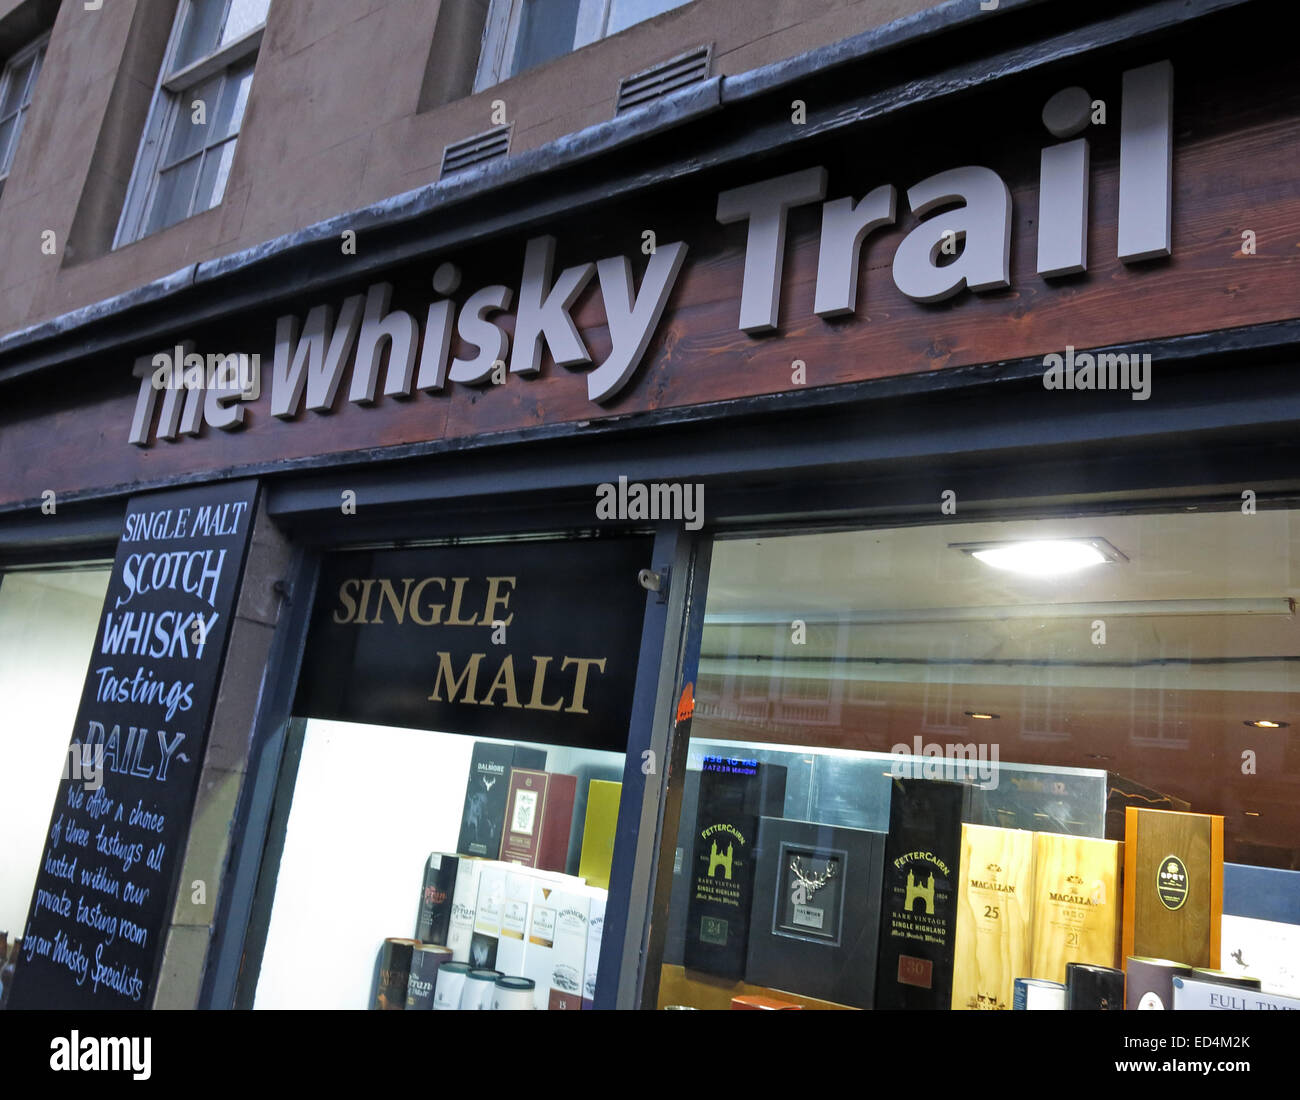 Edinburgh Whisky Trail Shop, Scotland, UK - Stock Image